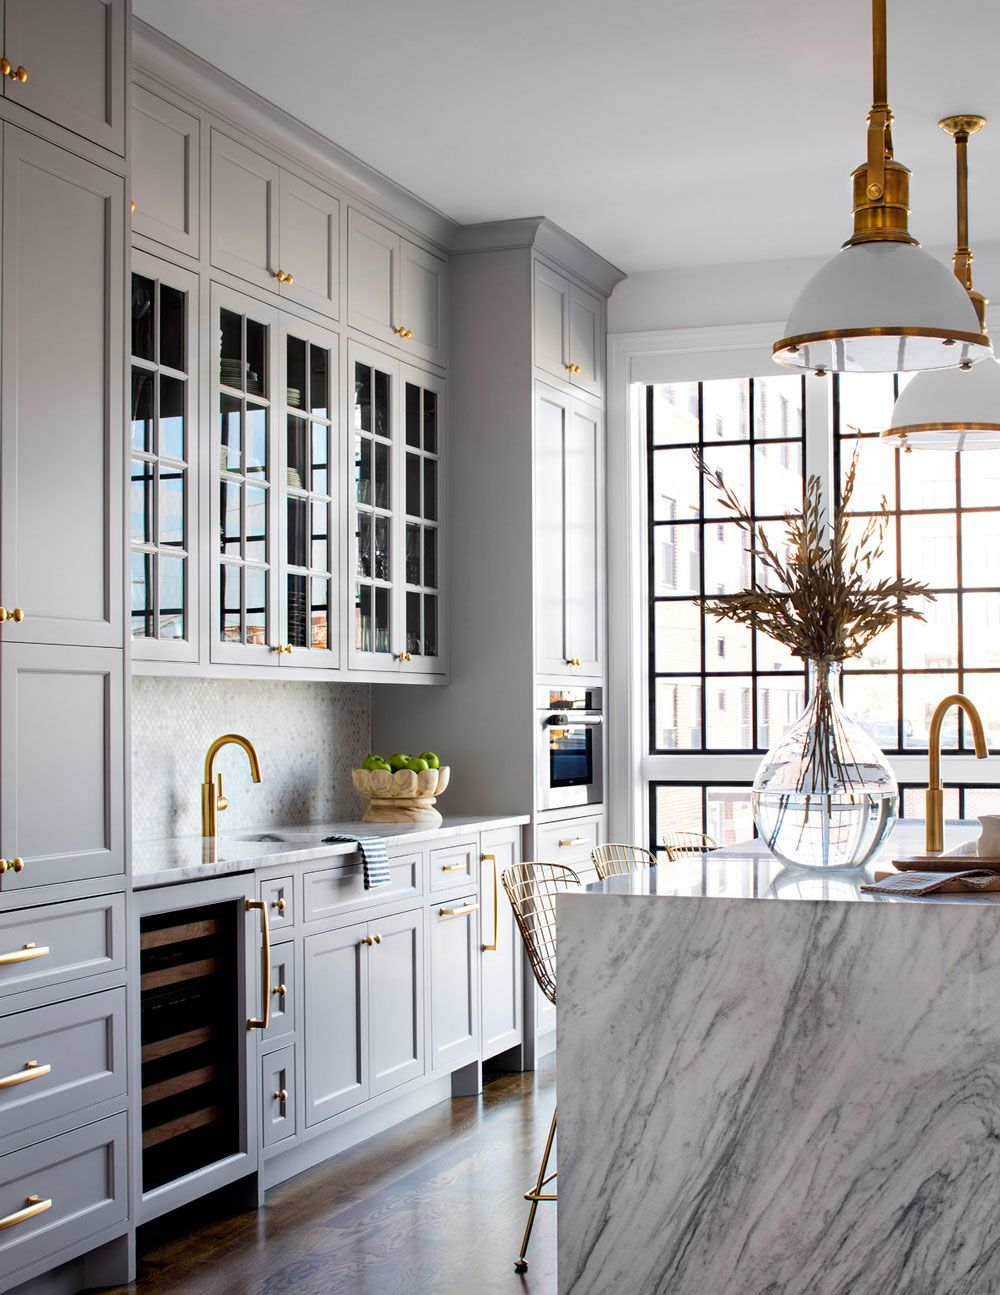 Crystal Cabinet Promotion 5 Off Inset Cabinetry Luxury Kitchen Design Inset Cabinets Kitchen Design